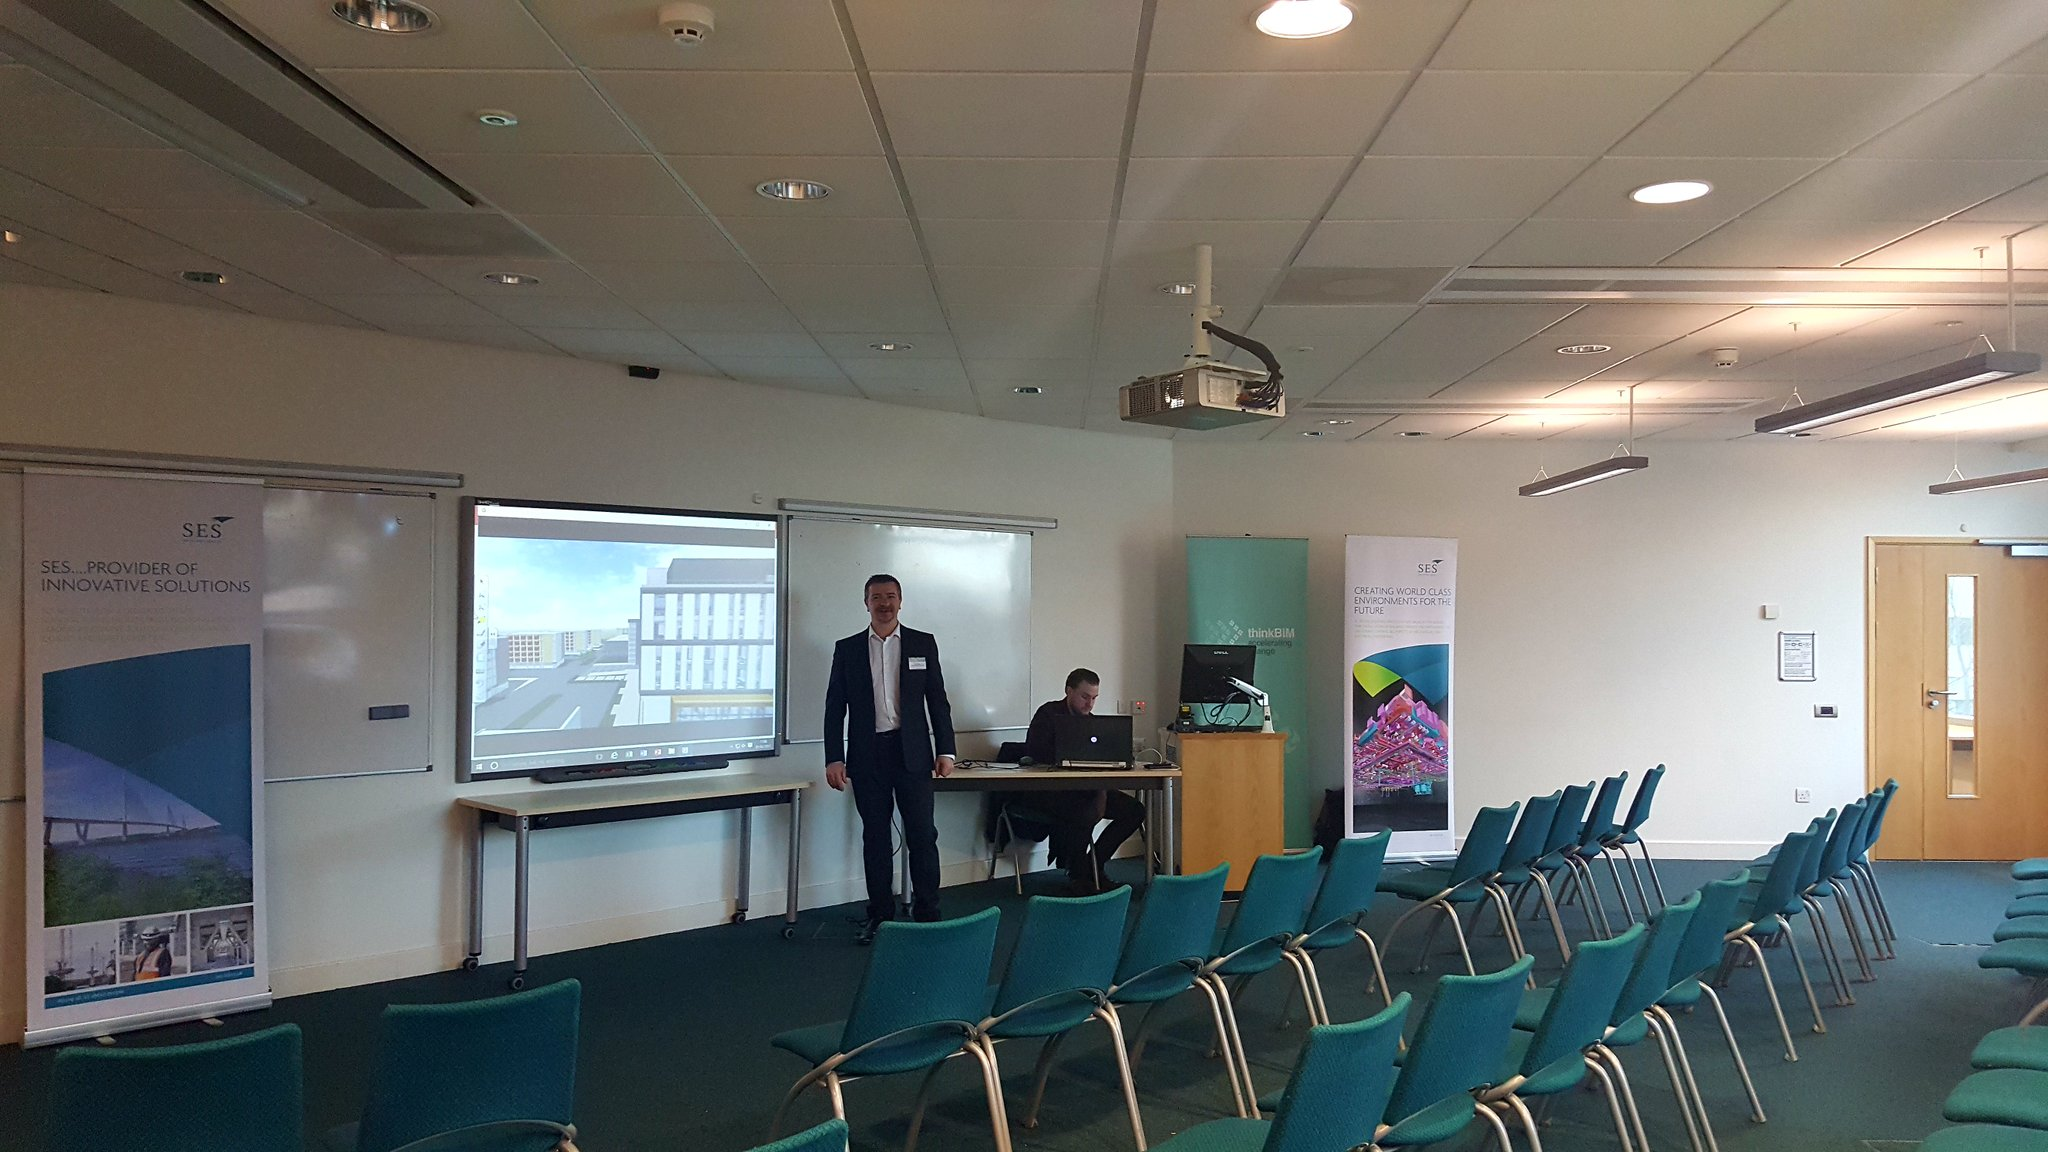 Set up & ready for tonights event with a live demo too! @WatesGroup #tbim2017 https://t.co/m5cvGQcIdy